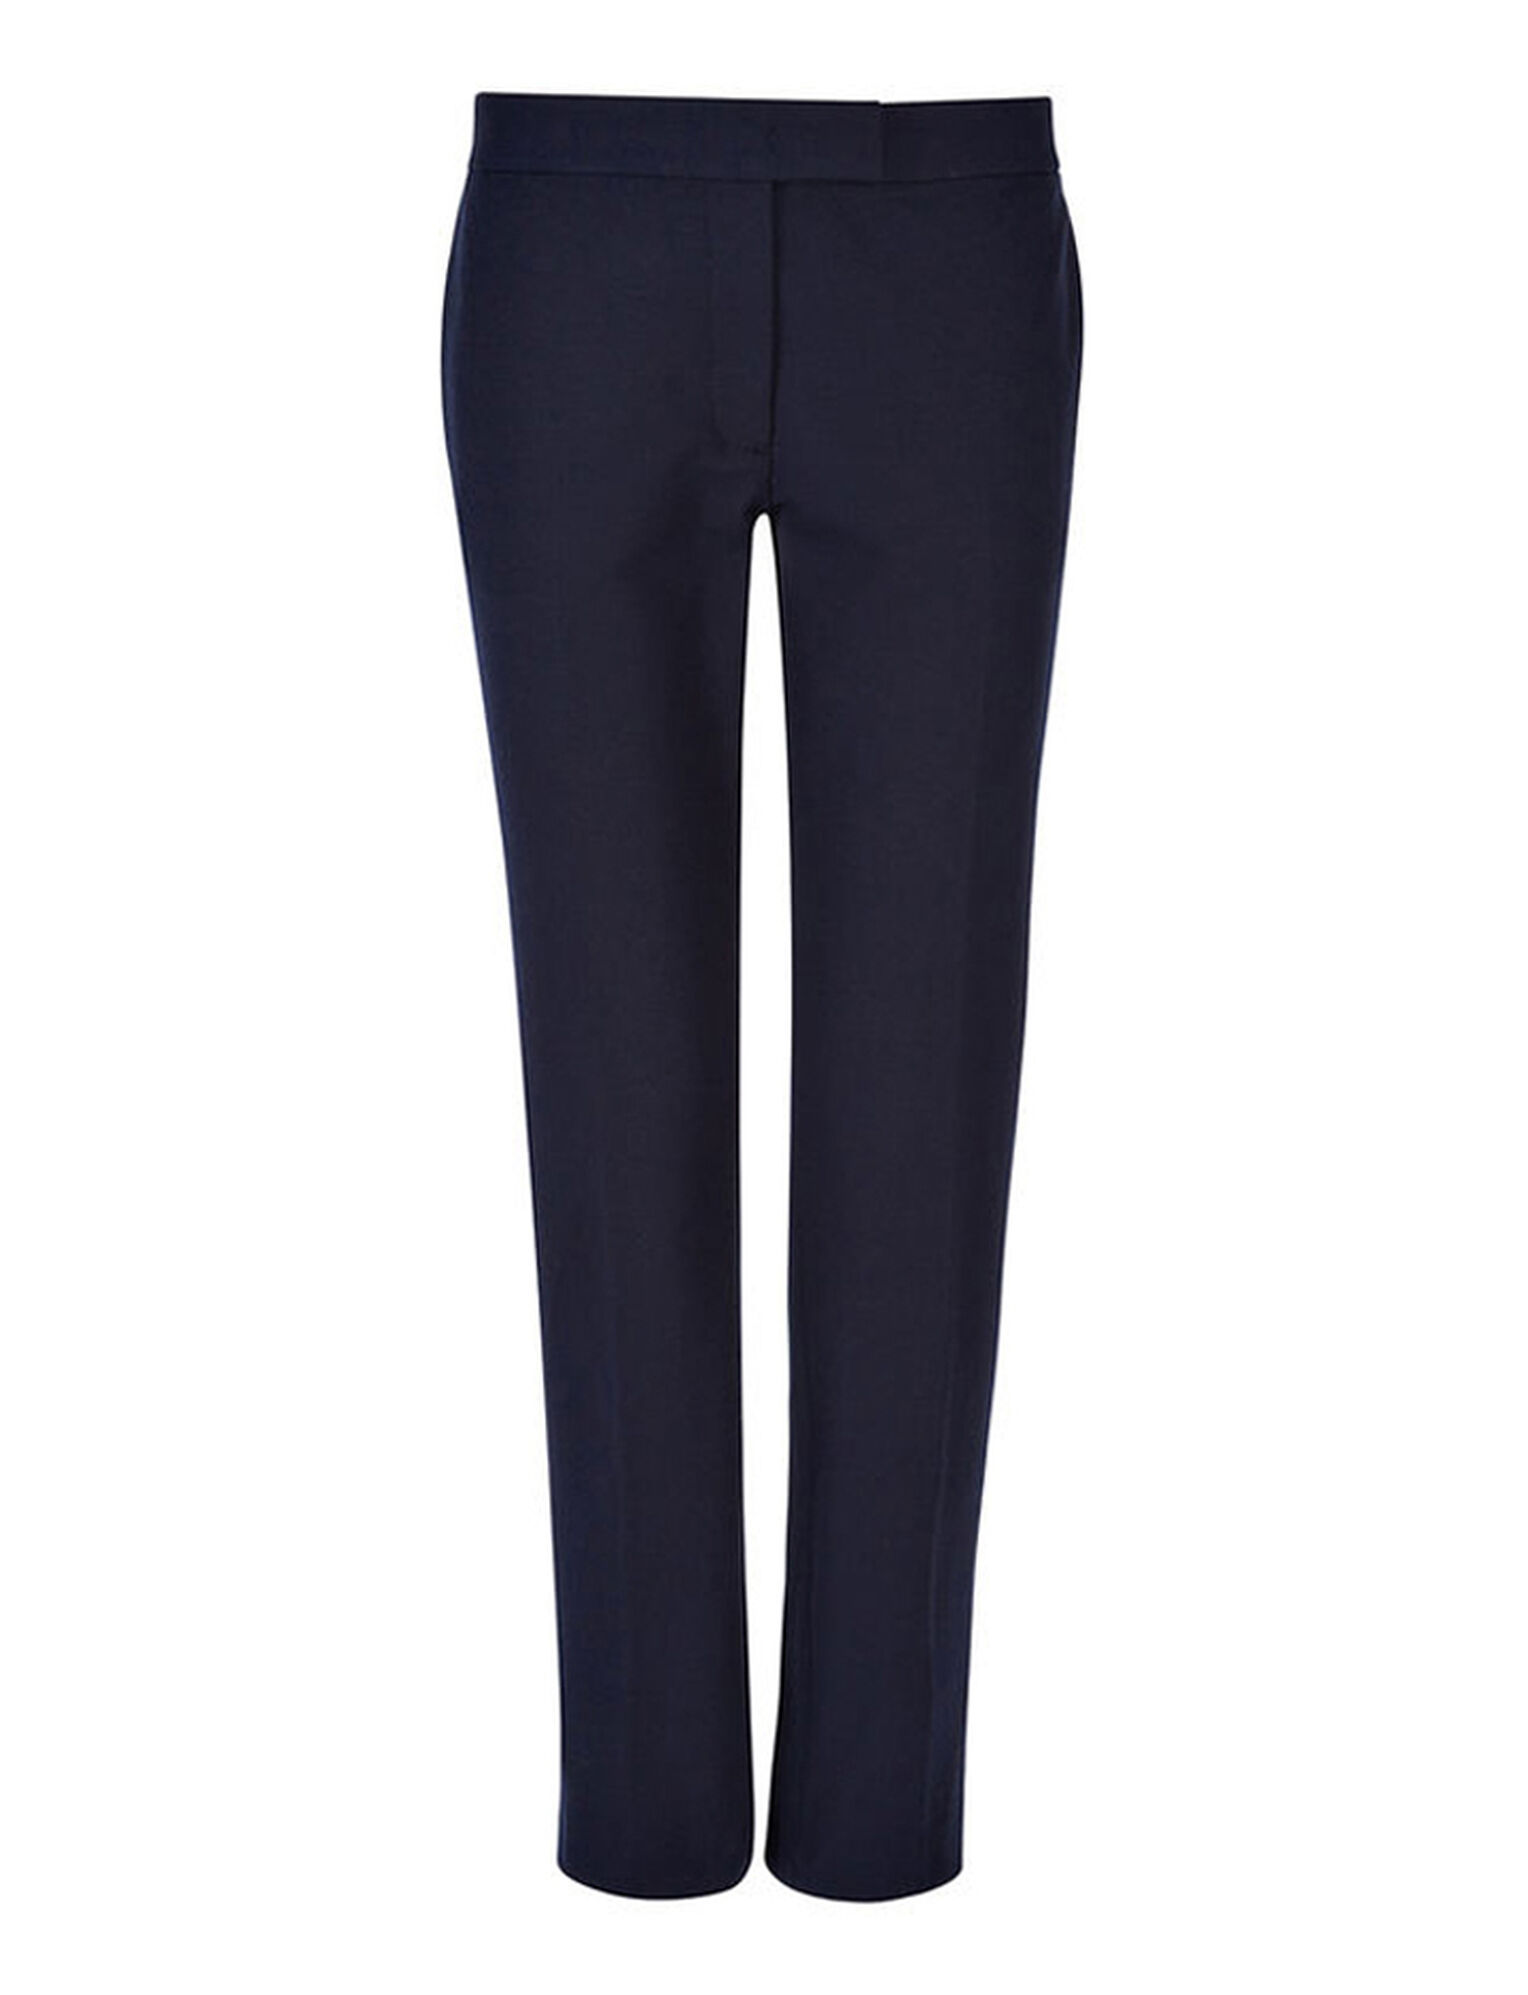 Joseph, Gabardine Stretch Finley Trouser, in NAVY